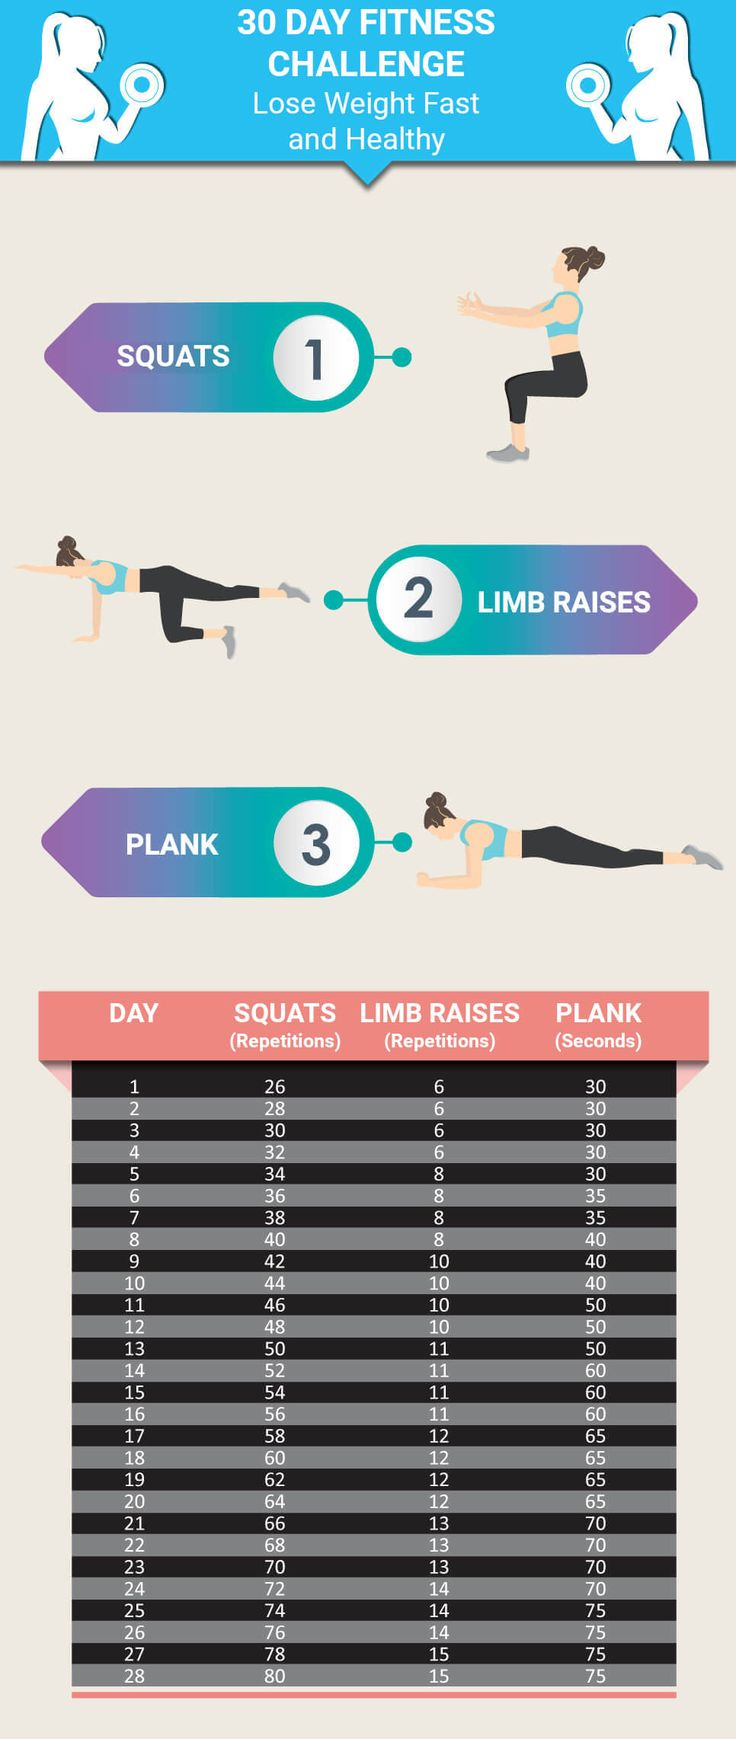 30 Day Fitness Challenge For Women Get Toned Abs, Arms